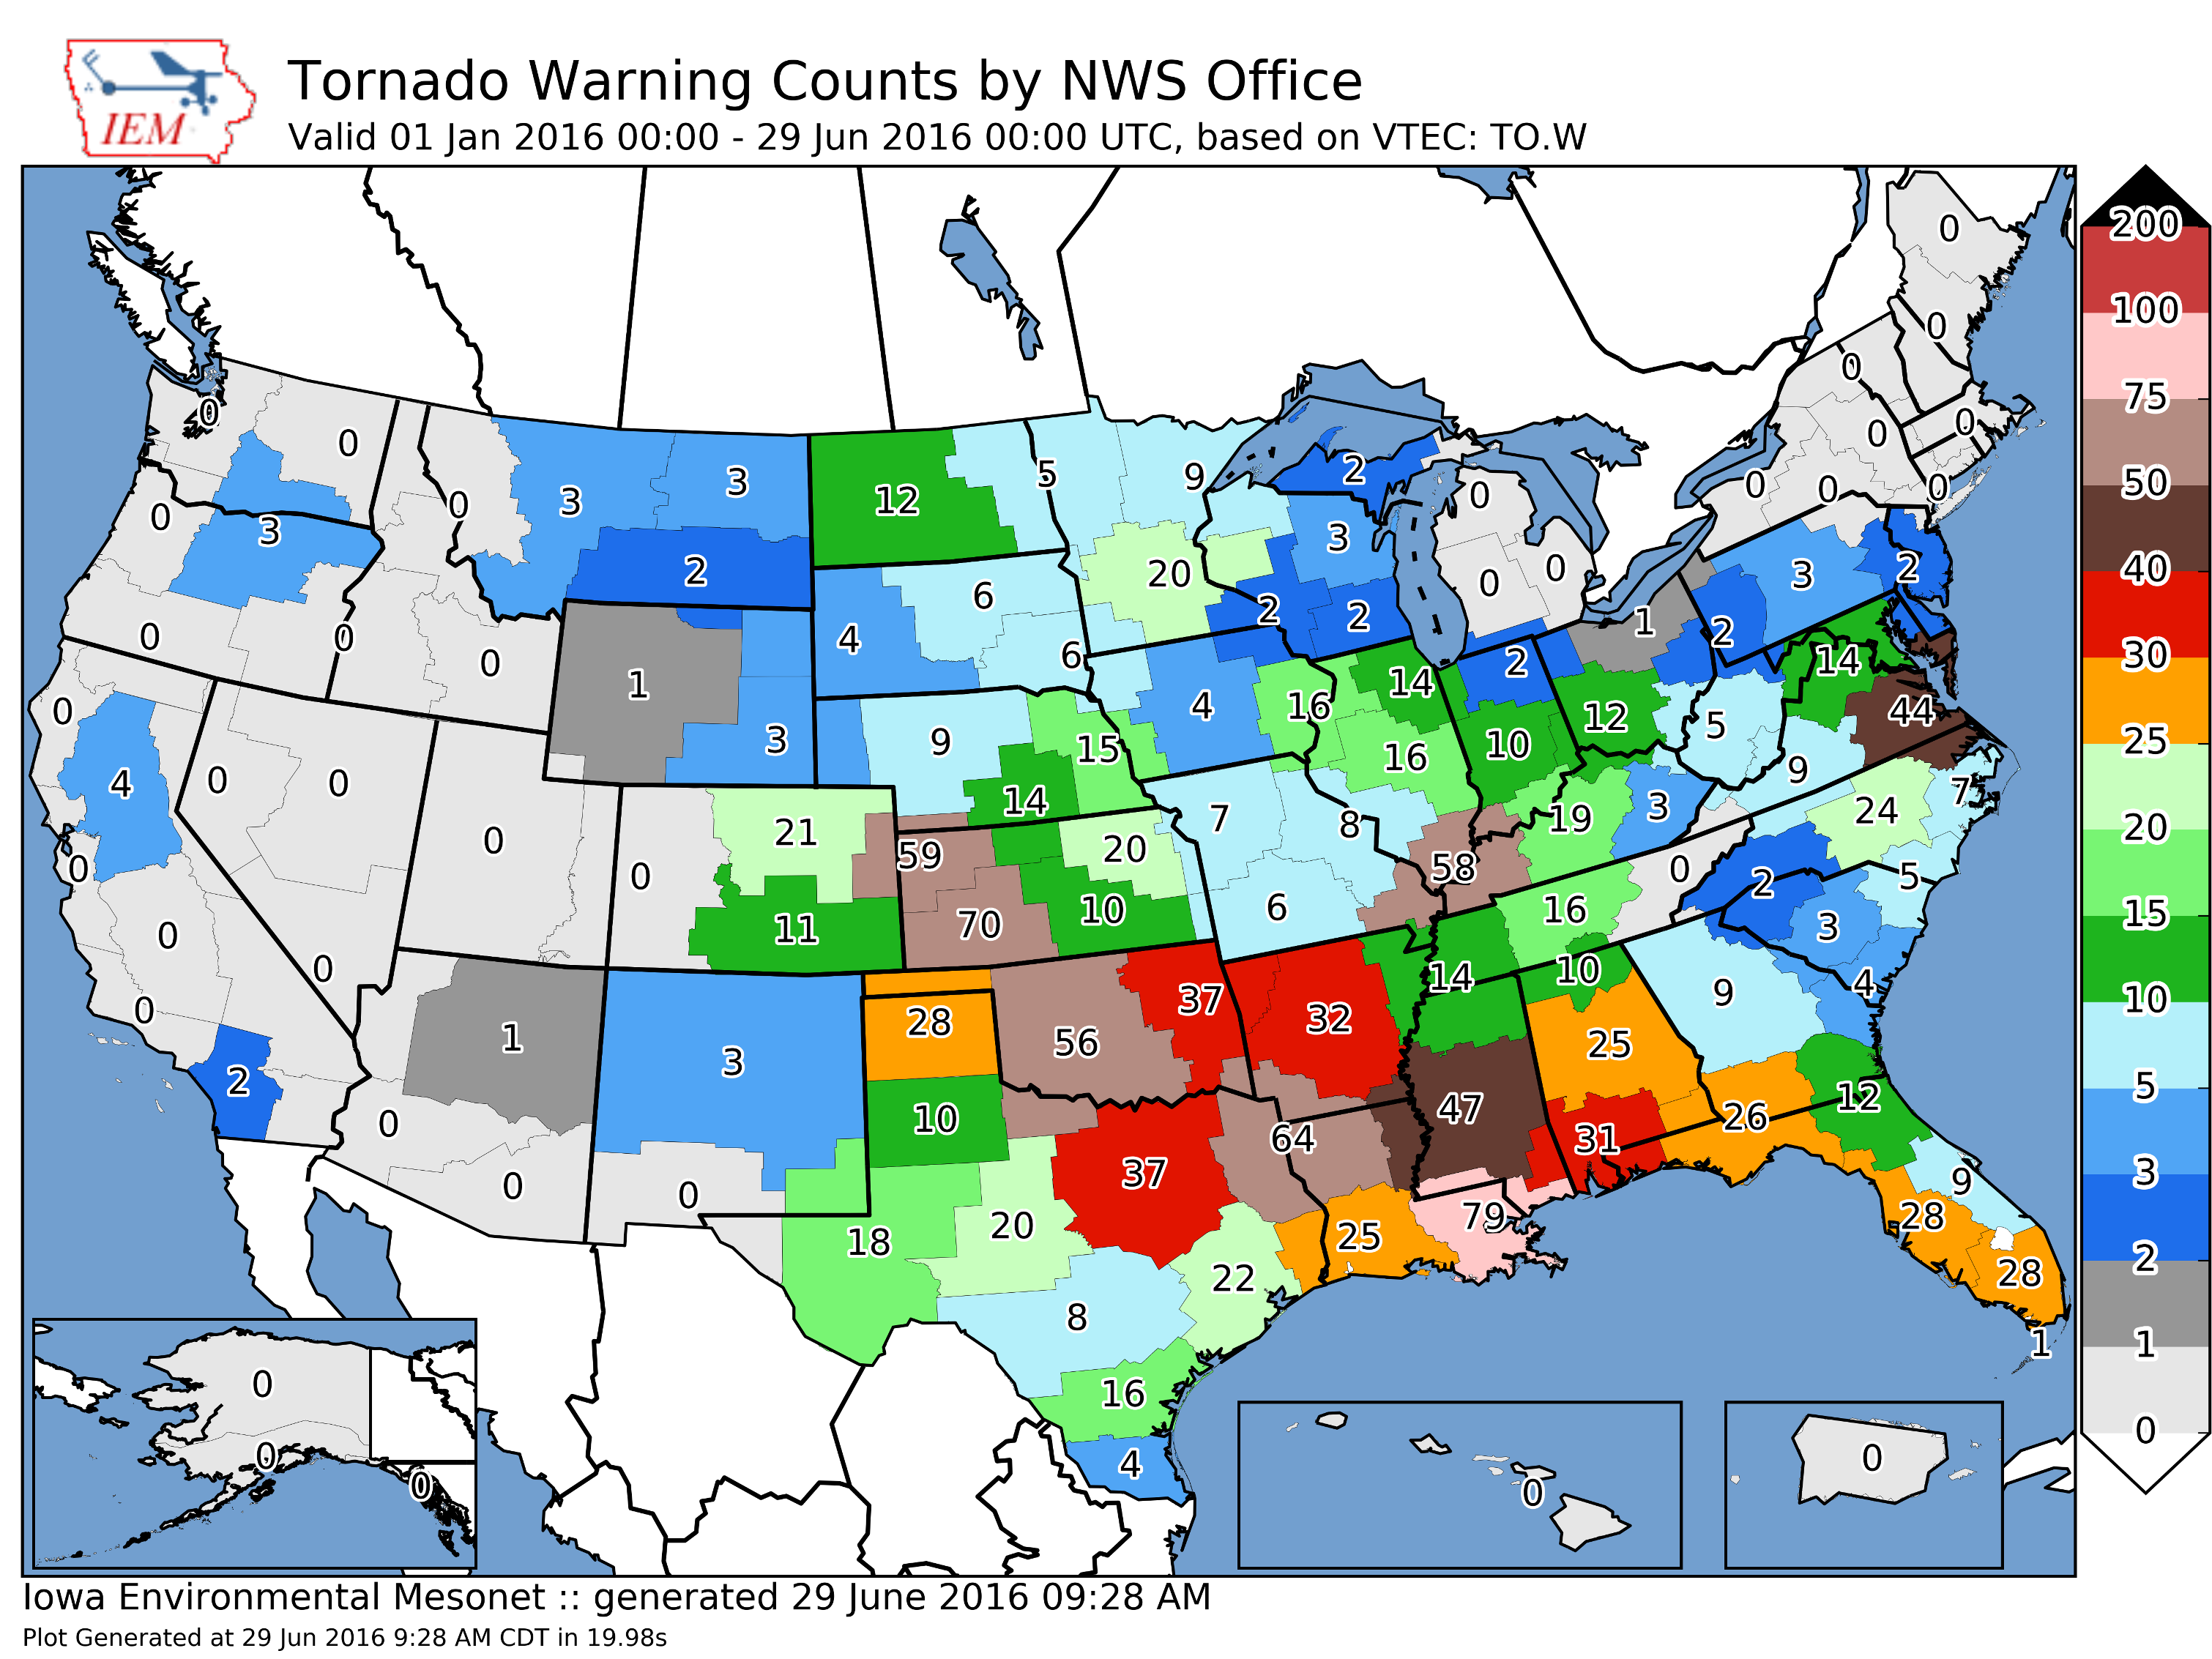 Year-to-Date NWS Tornado Warnings ending on June 29, 2016. NWS Des Moines had only issued 4 tornado warnings up until that point. Image is courtesy Iowa Environmental Mesonet.